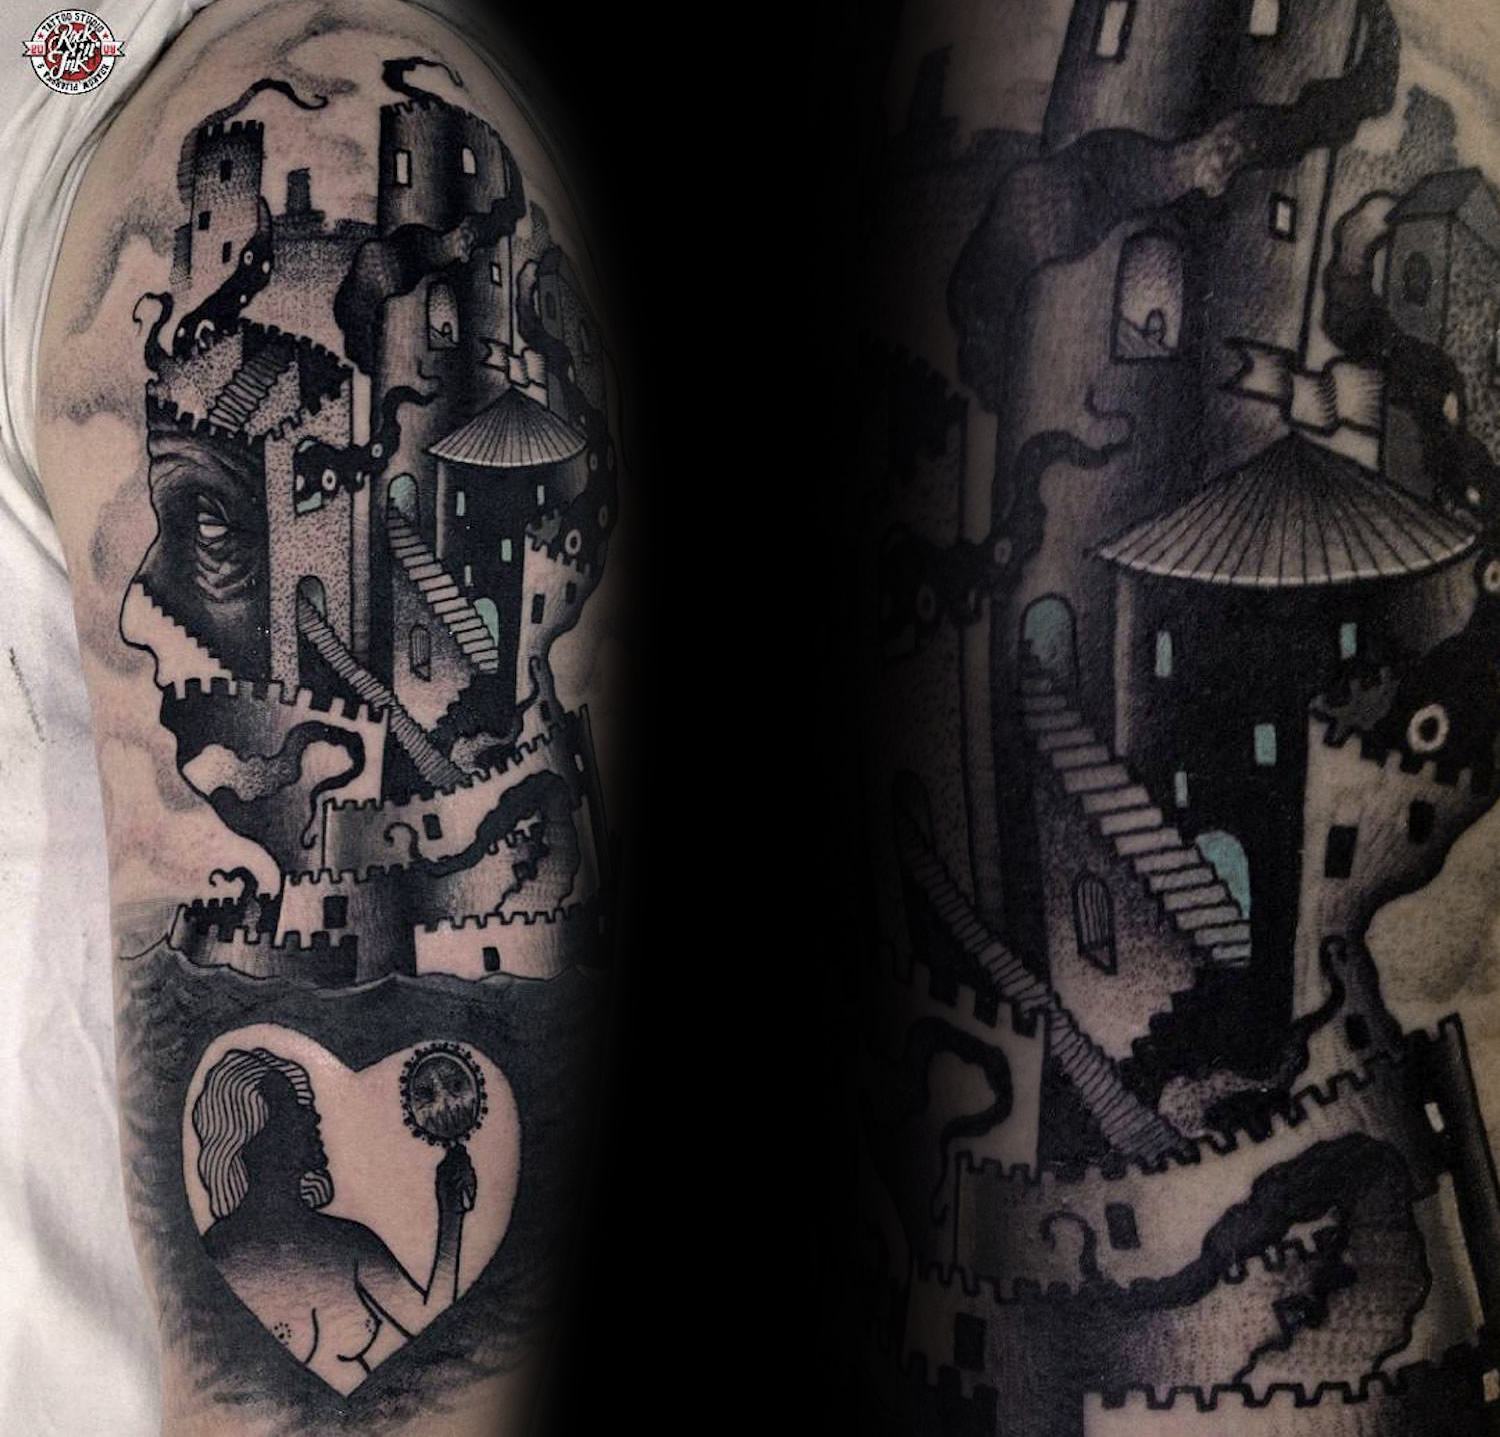 Tattoo that shows a complex staircase inside of a portrait, mc escher style